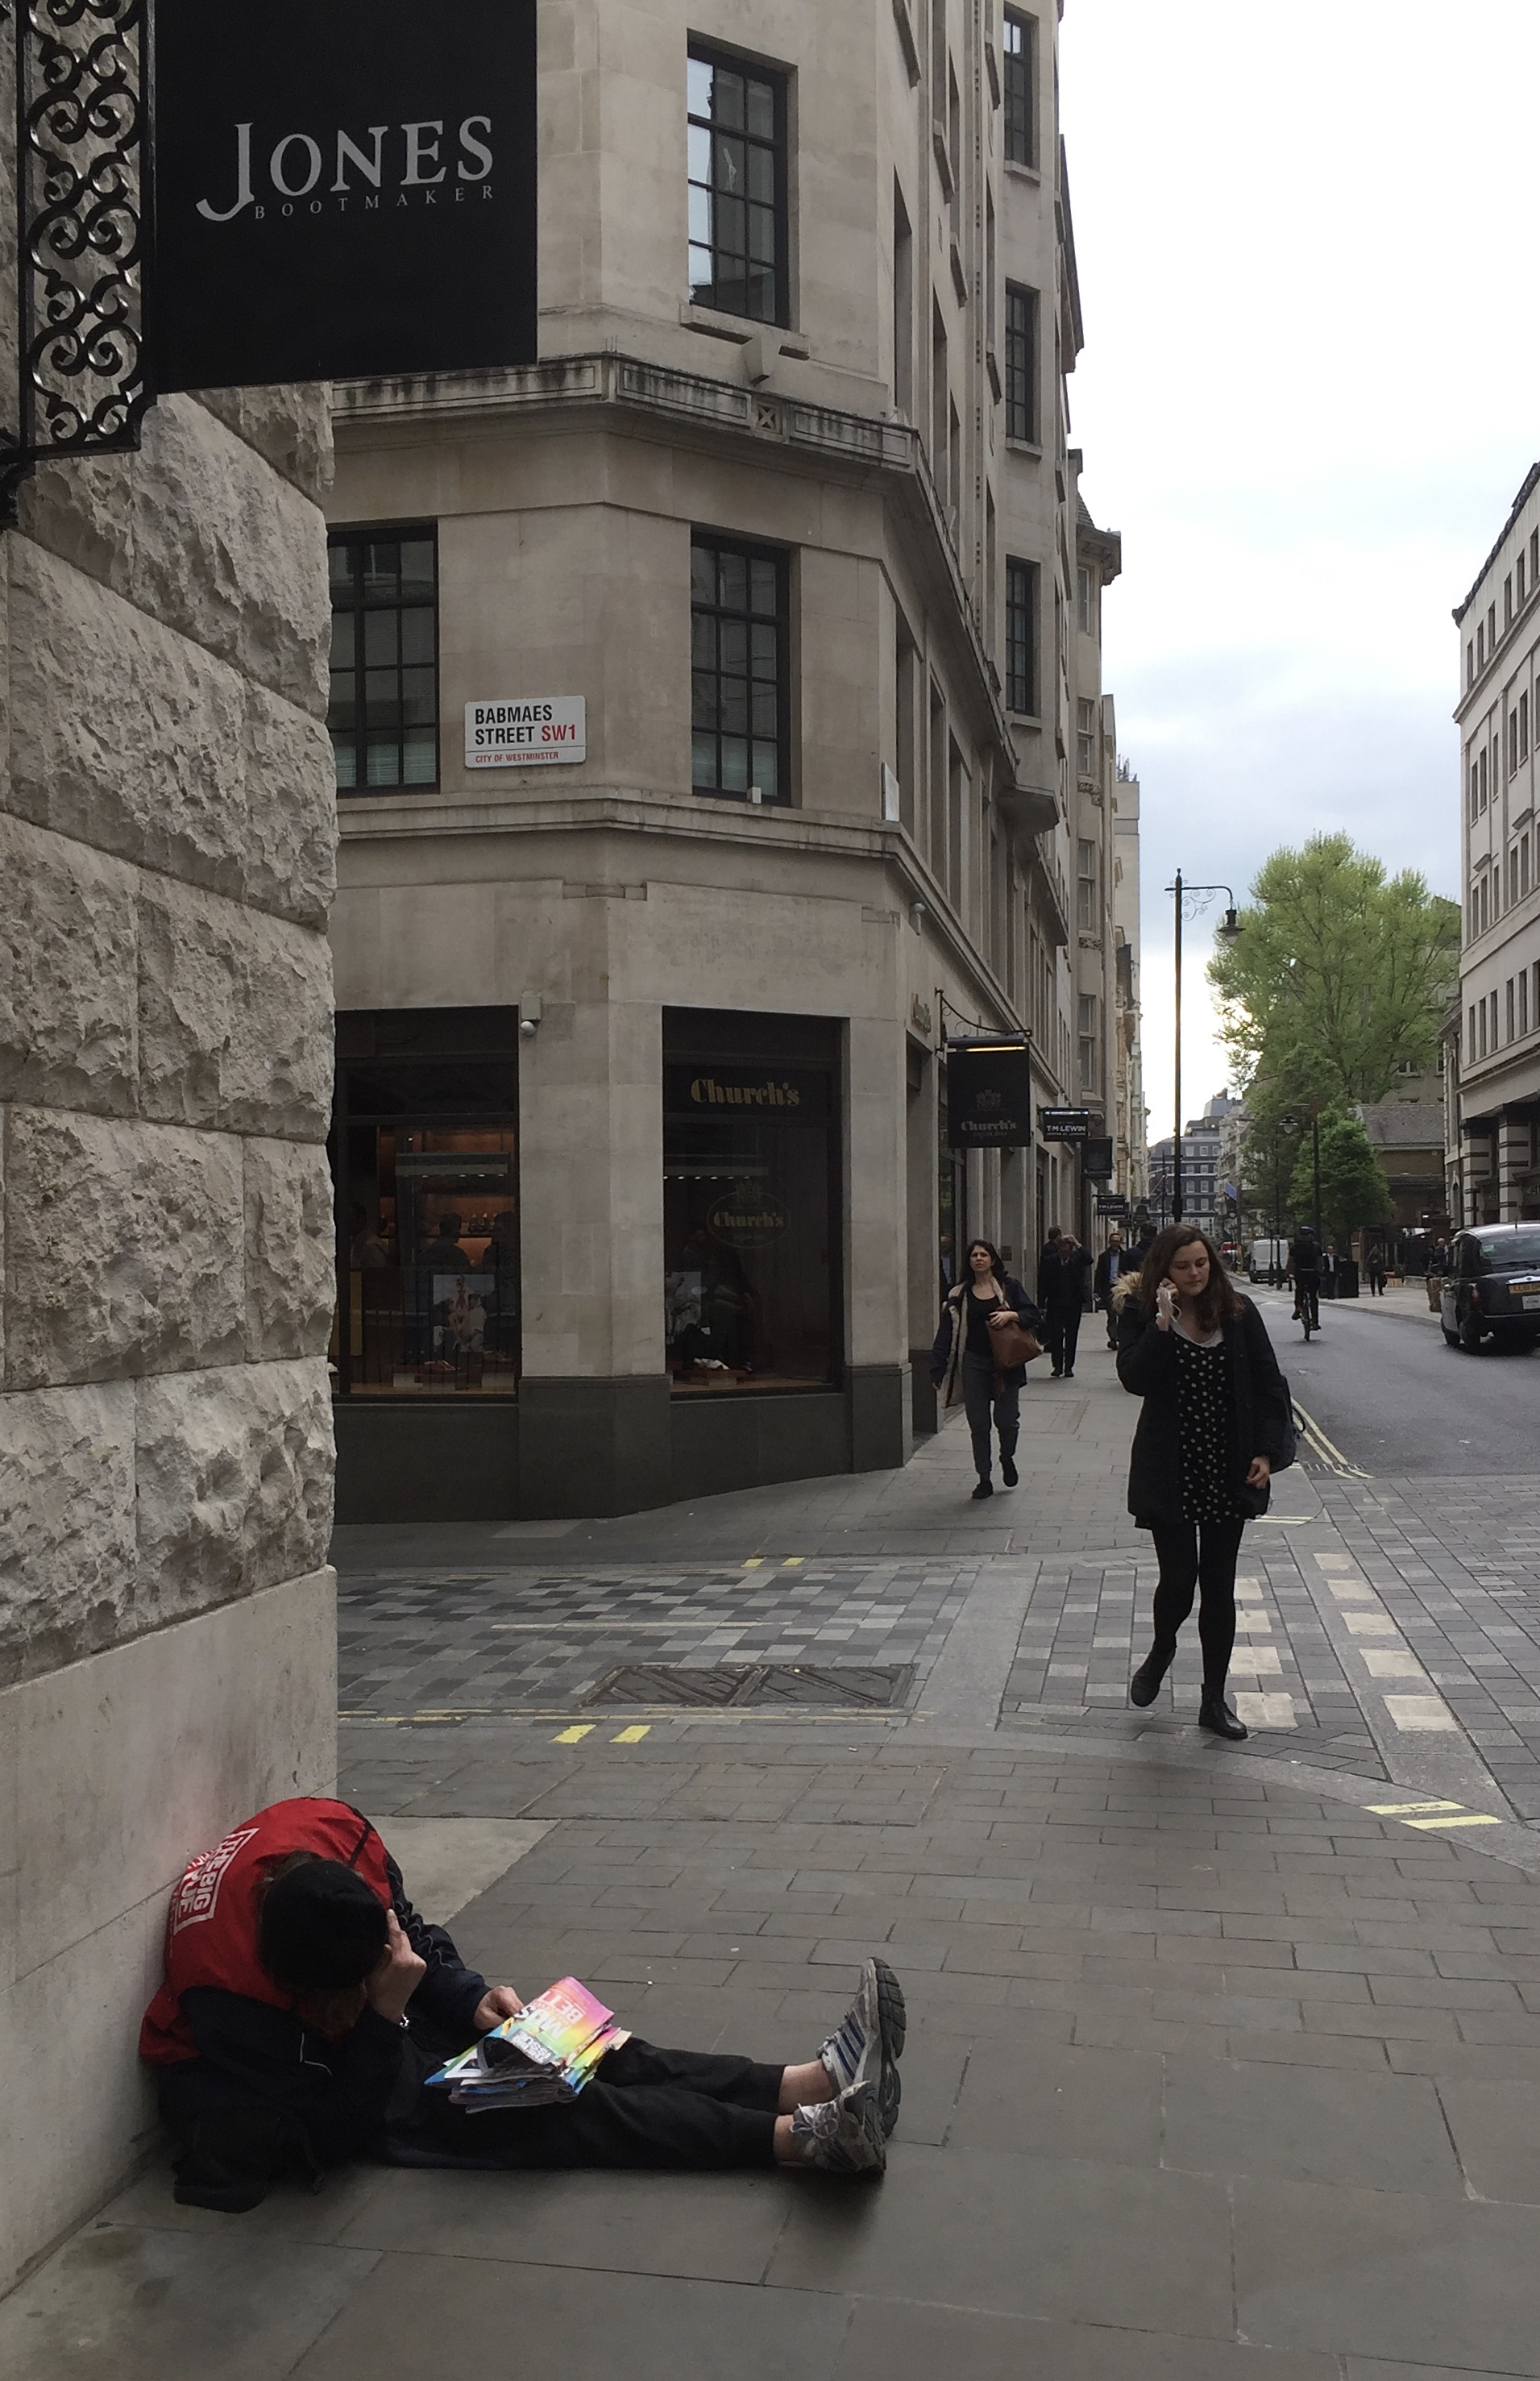 Jermyn Street; a pissed Big Issue seller lies amidst Jones and Church's shoe shops. Maybe he's saving for a new pair?